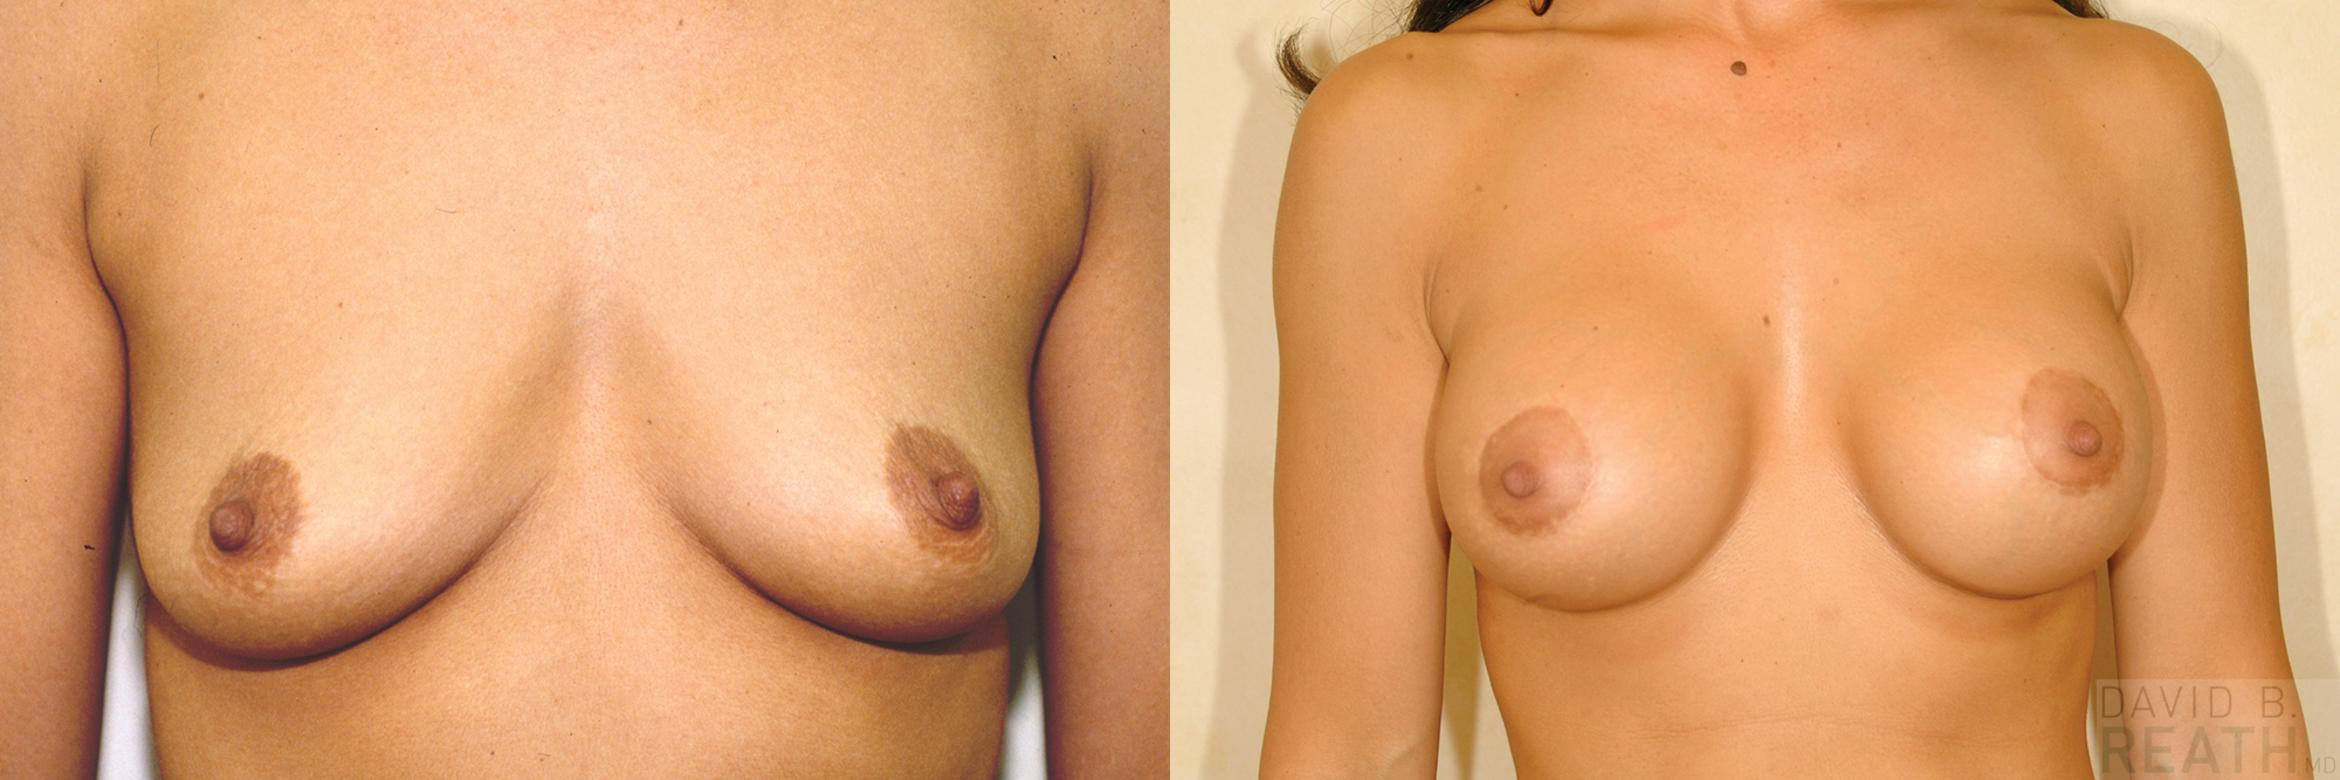 Breast Lift Before & After Photo | Knoxville, Tennessee | David B. Reath, MD